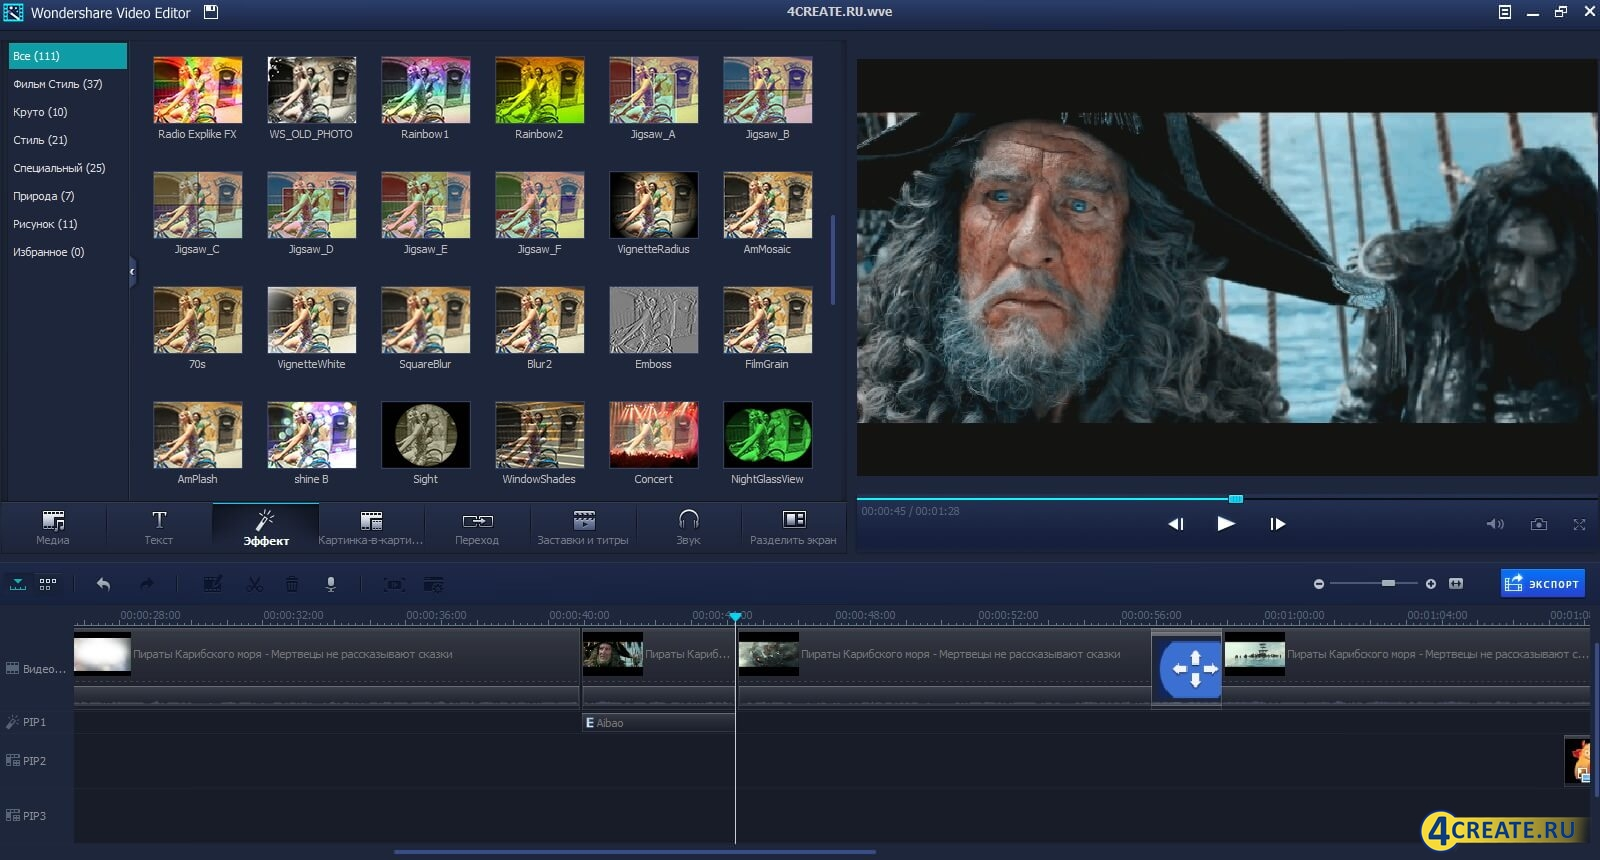 Wondershare Video Editor 5.1 (Скриншот 2)